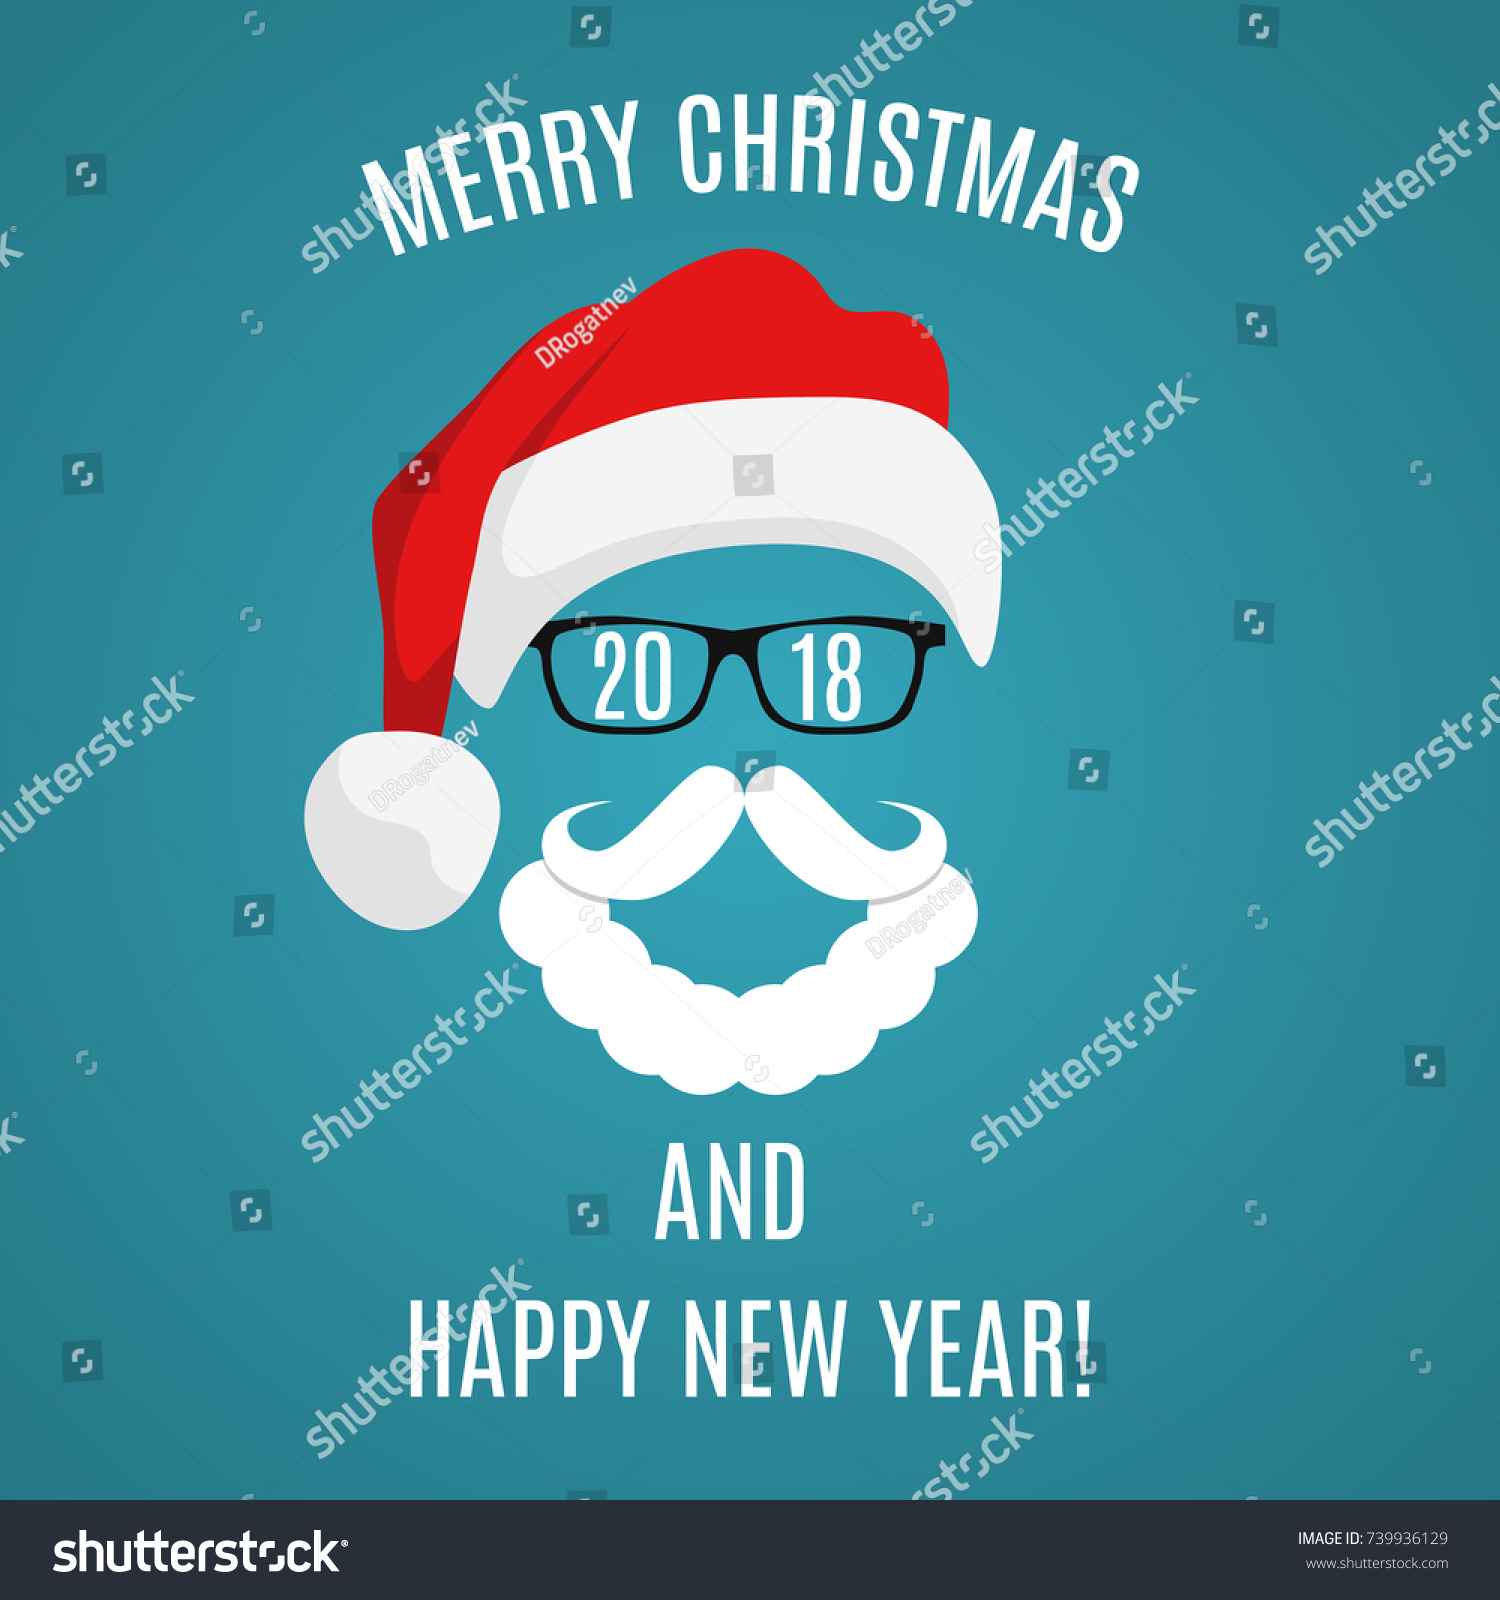 Merry Christmas Greeting Card Template Santa Stock Vector (Royalty ...